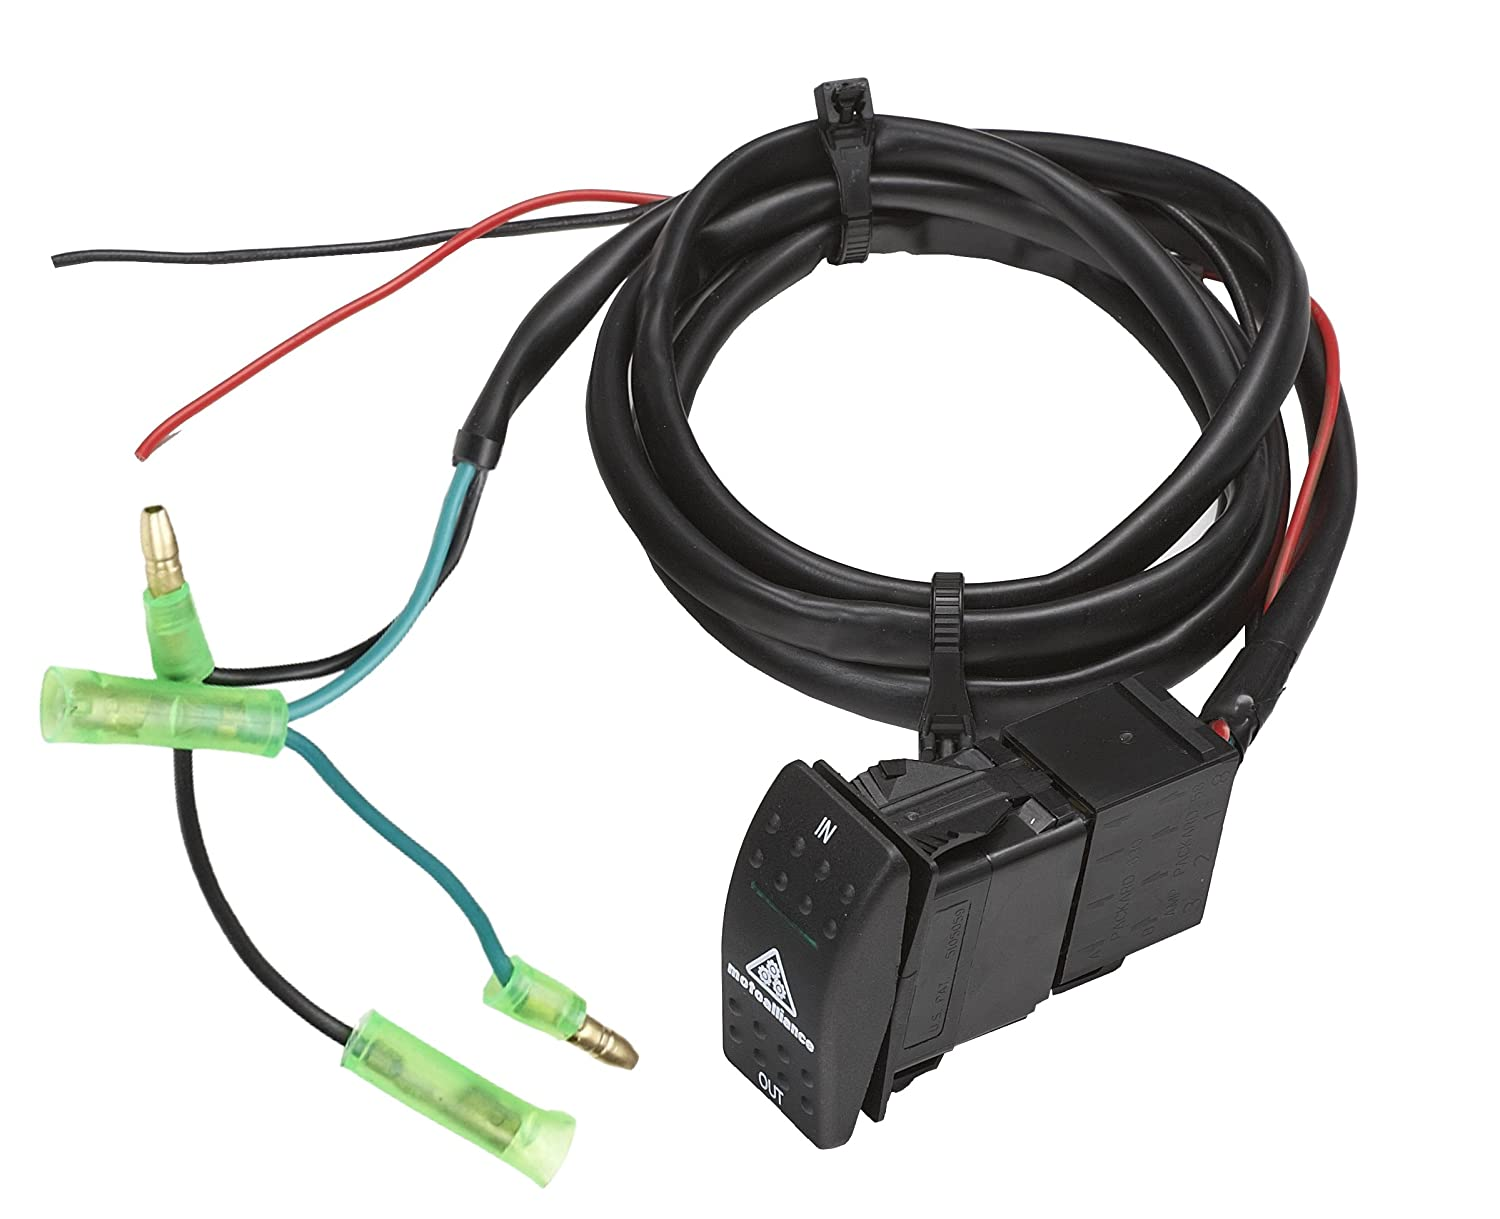 81SXimeEPqL._SL1500_ amazon com viper atv utv winch custom flush mount dash switch viper winch wiring diagram at crackthecode.co